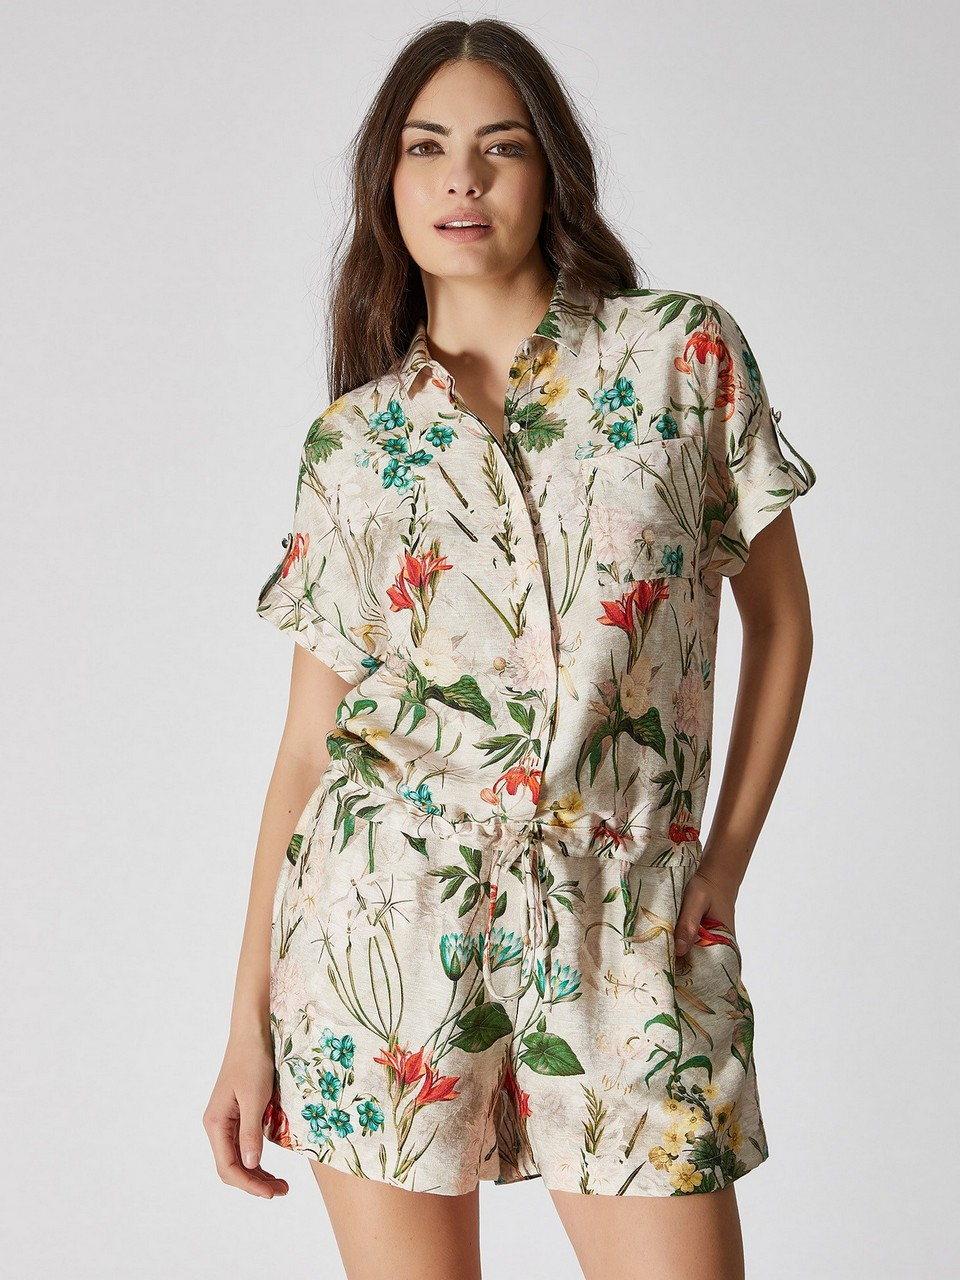 Shirt Neck Floral Patterned Jumpsuit